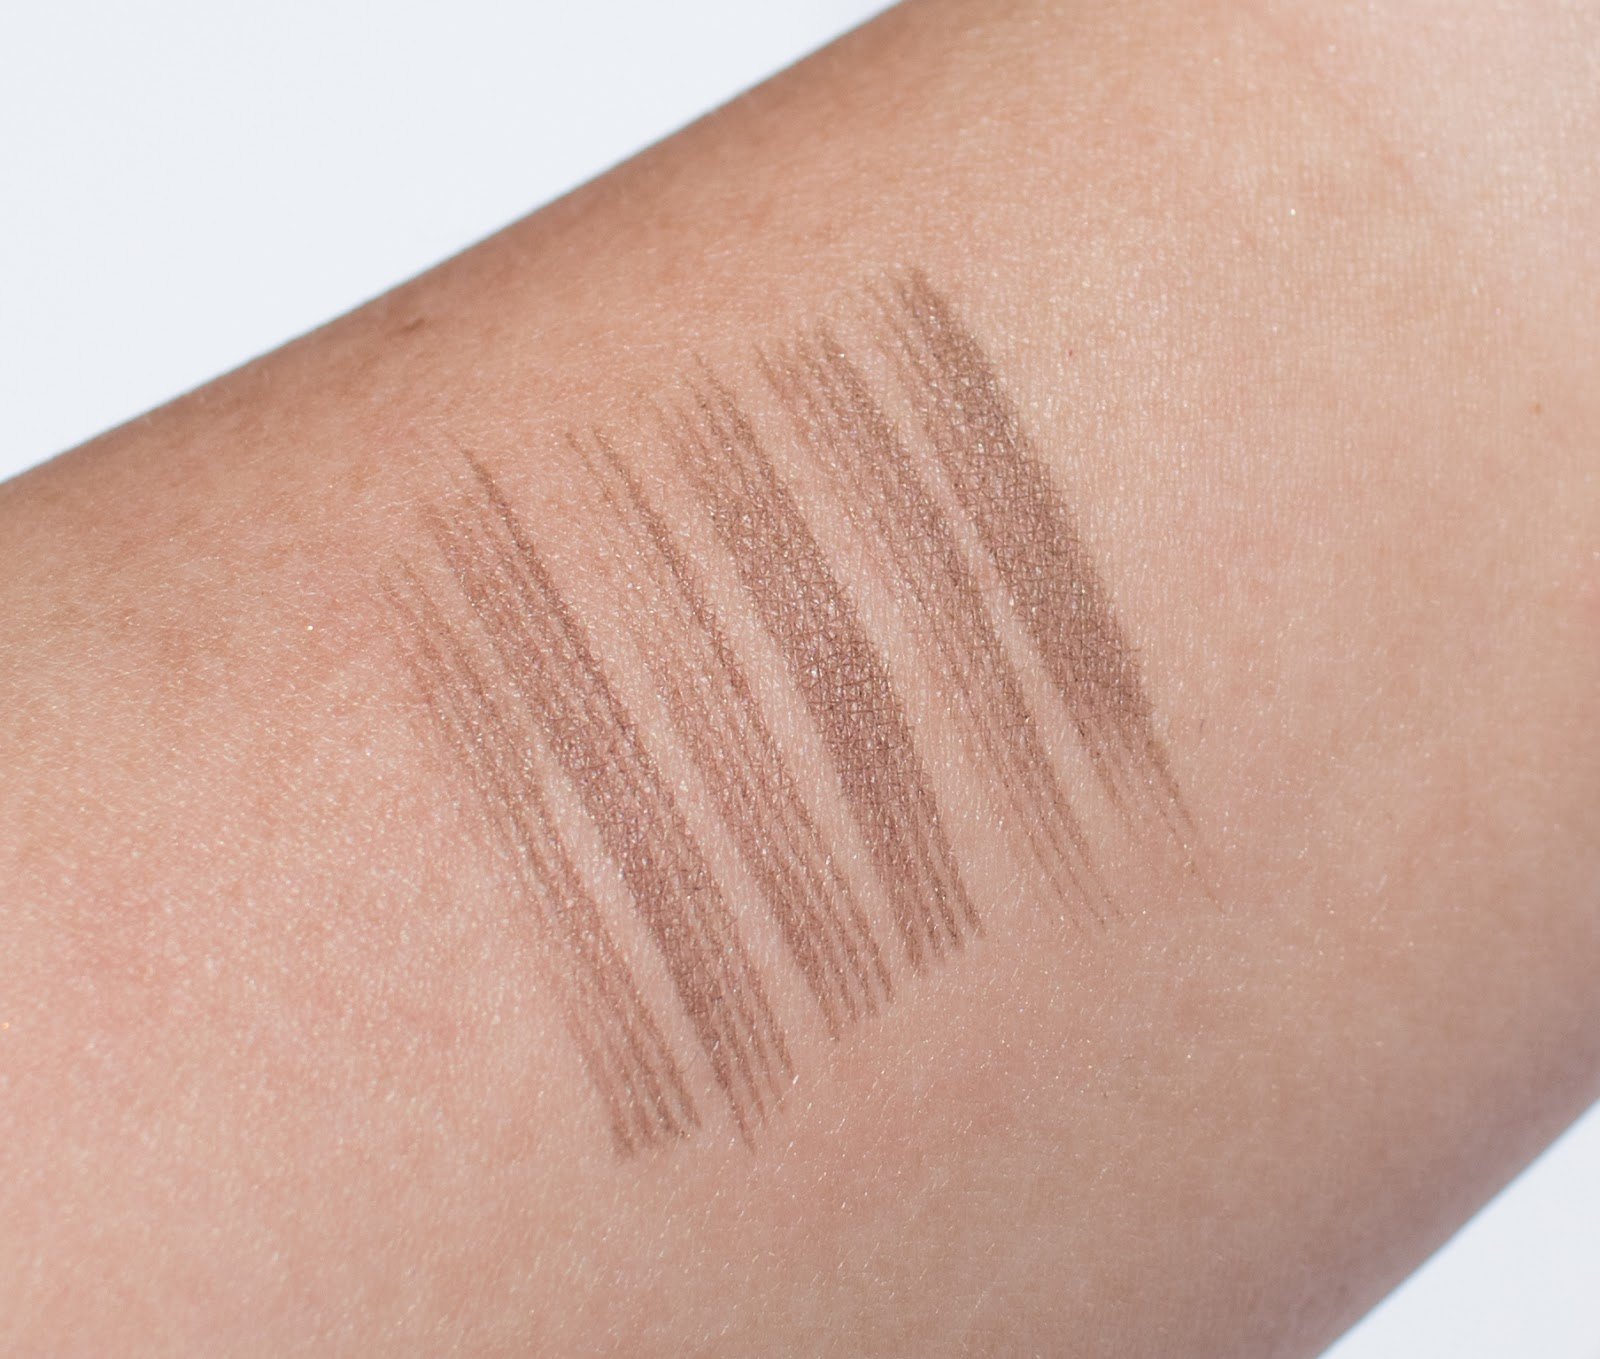 Maybelline Tattoo Studio Brow Tint Pen Expectations And Where To Buy